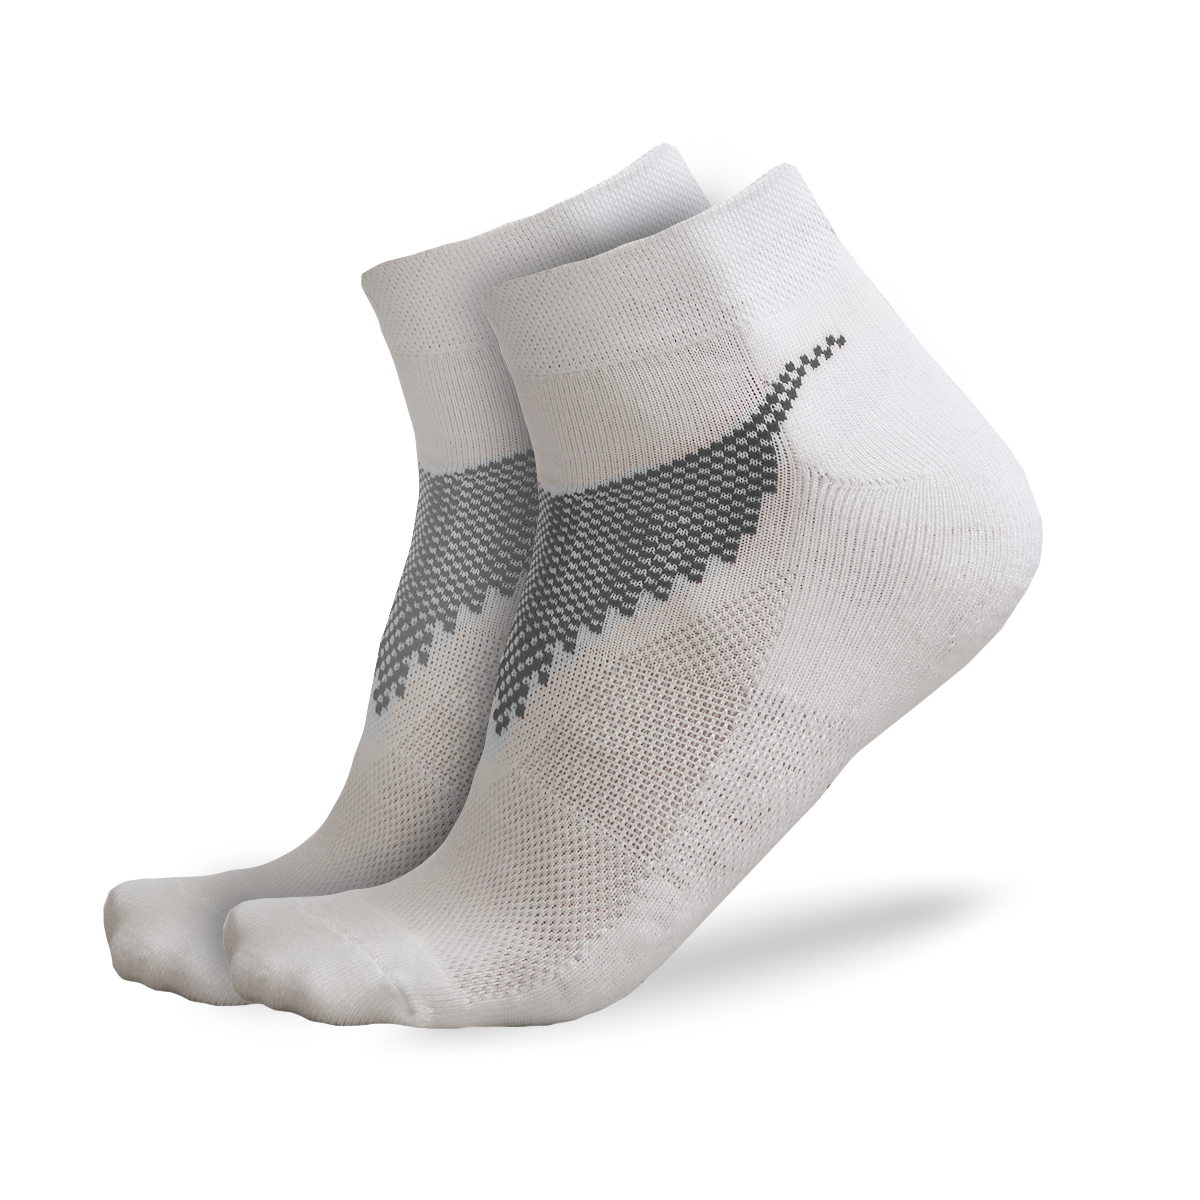 FREEZ ANCLE SOCKS 2-pack white 39-42